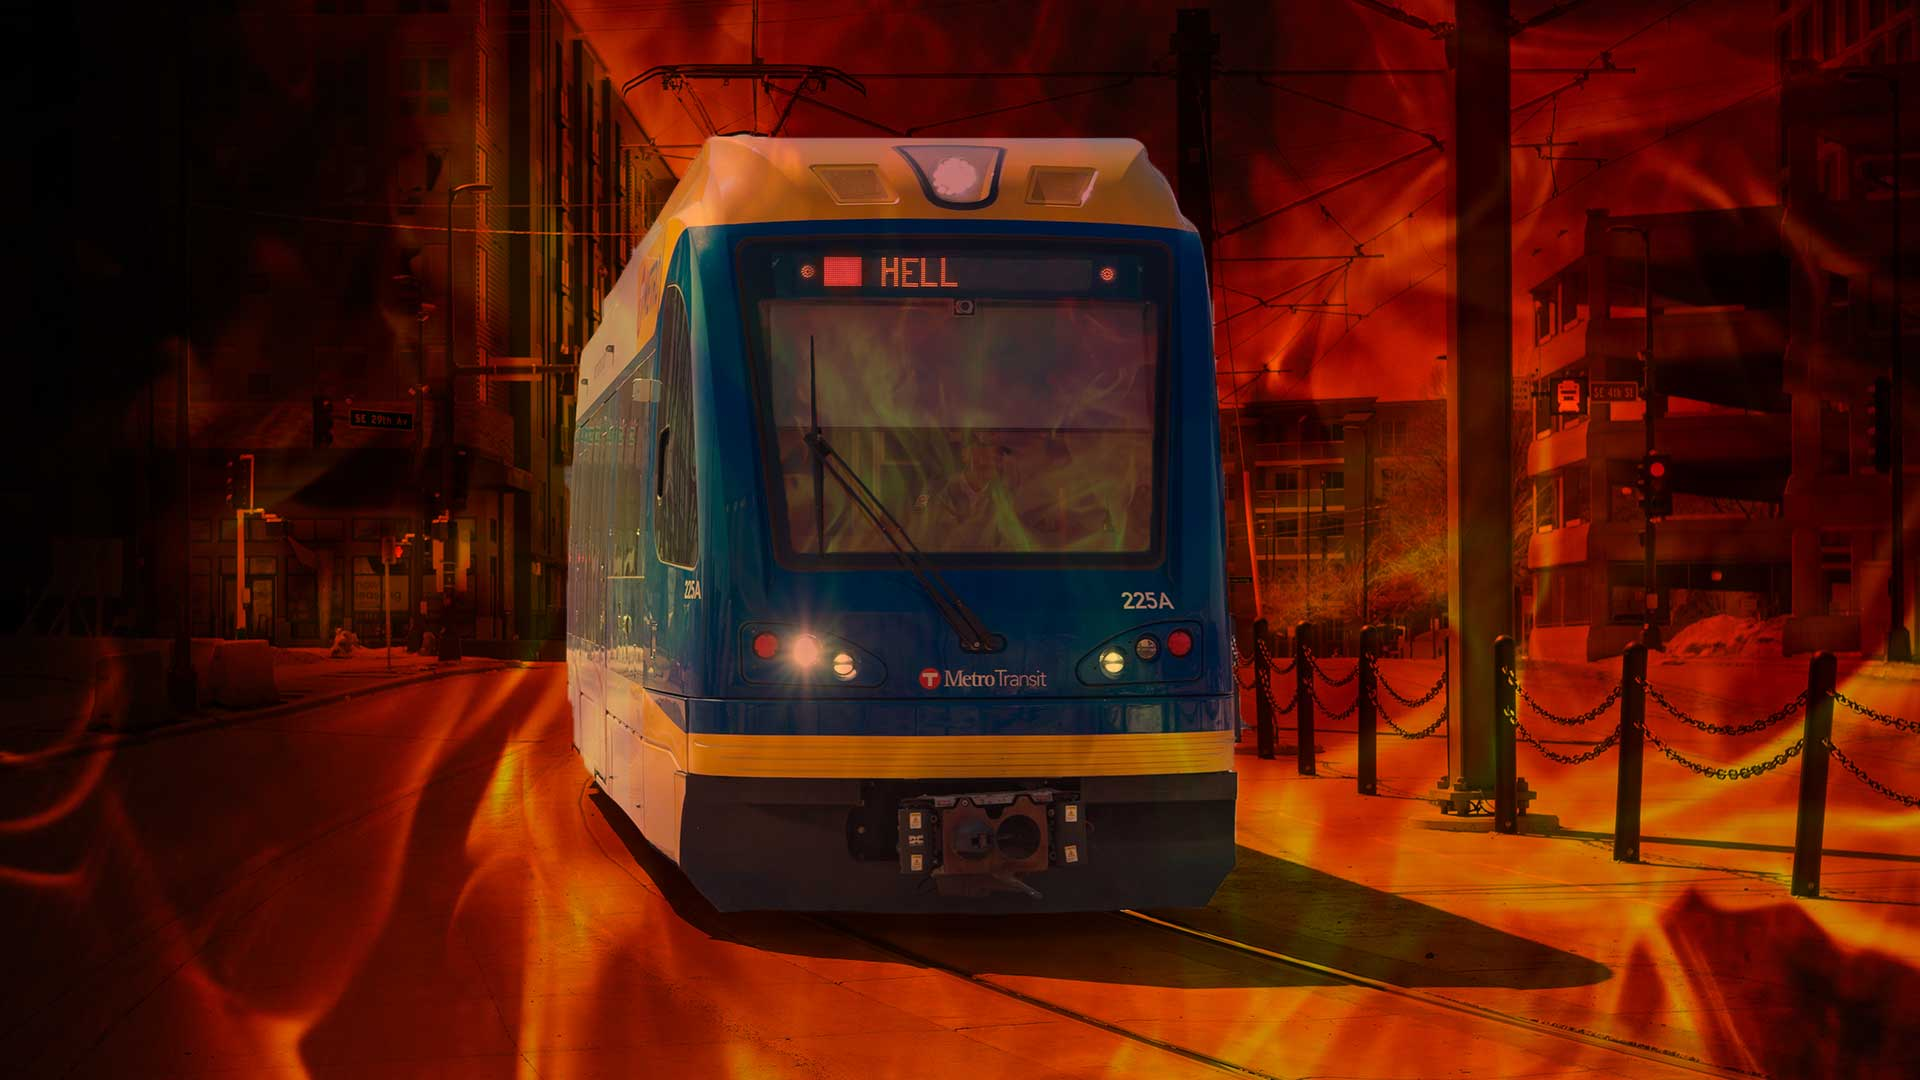 Metro-Transit-Unveils-New-Red-Line-that-Goes-Straight-to-Hell.jpg